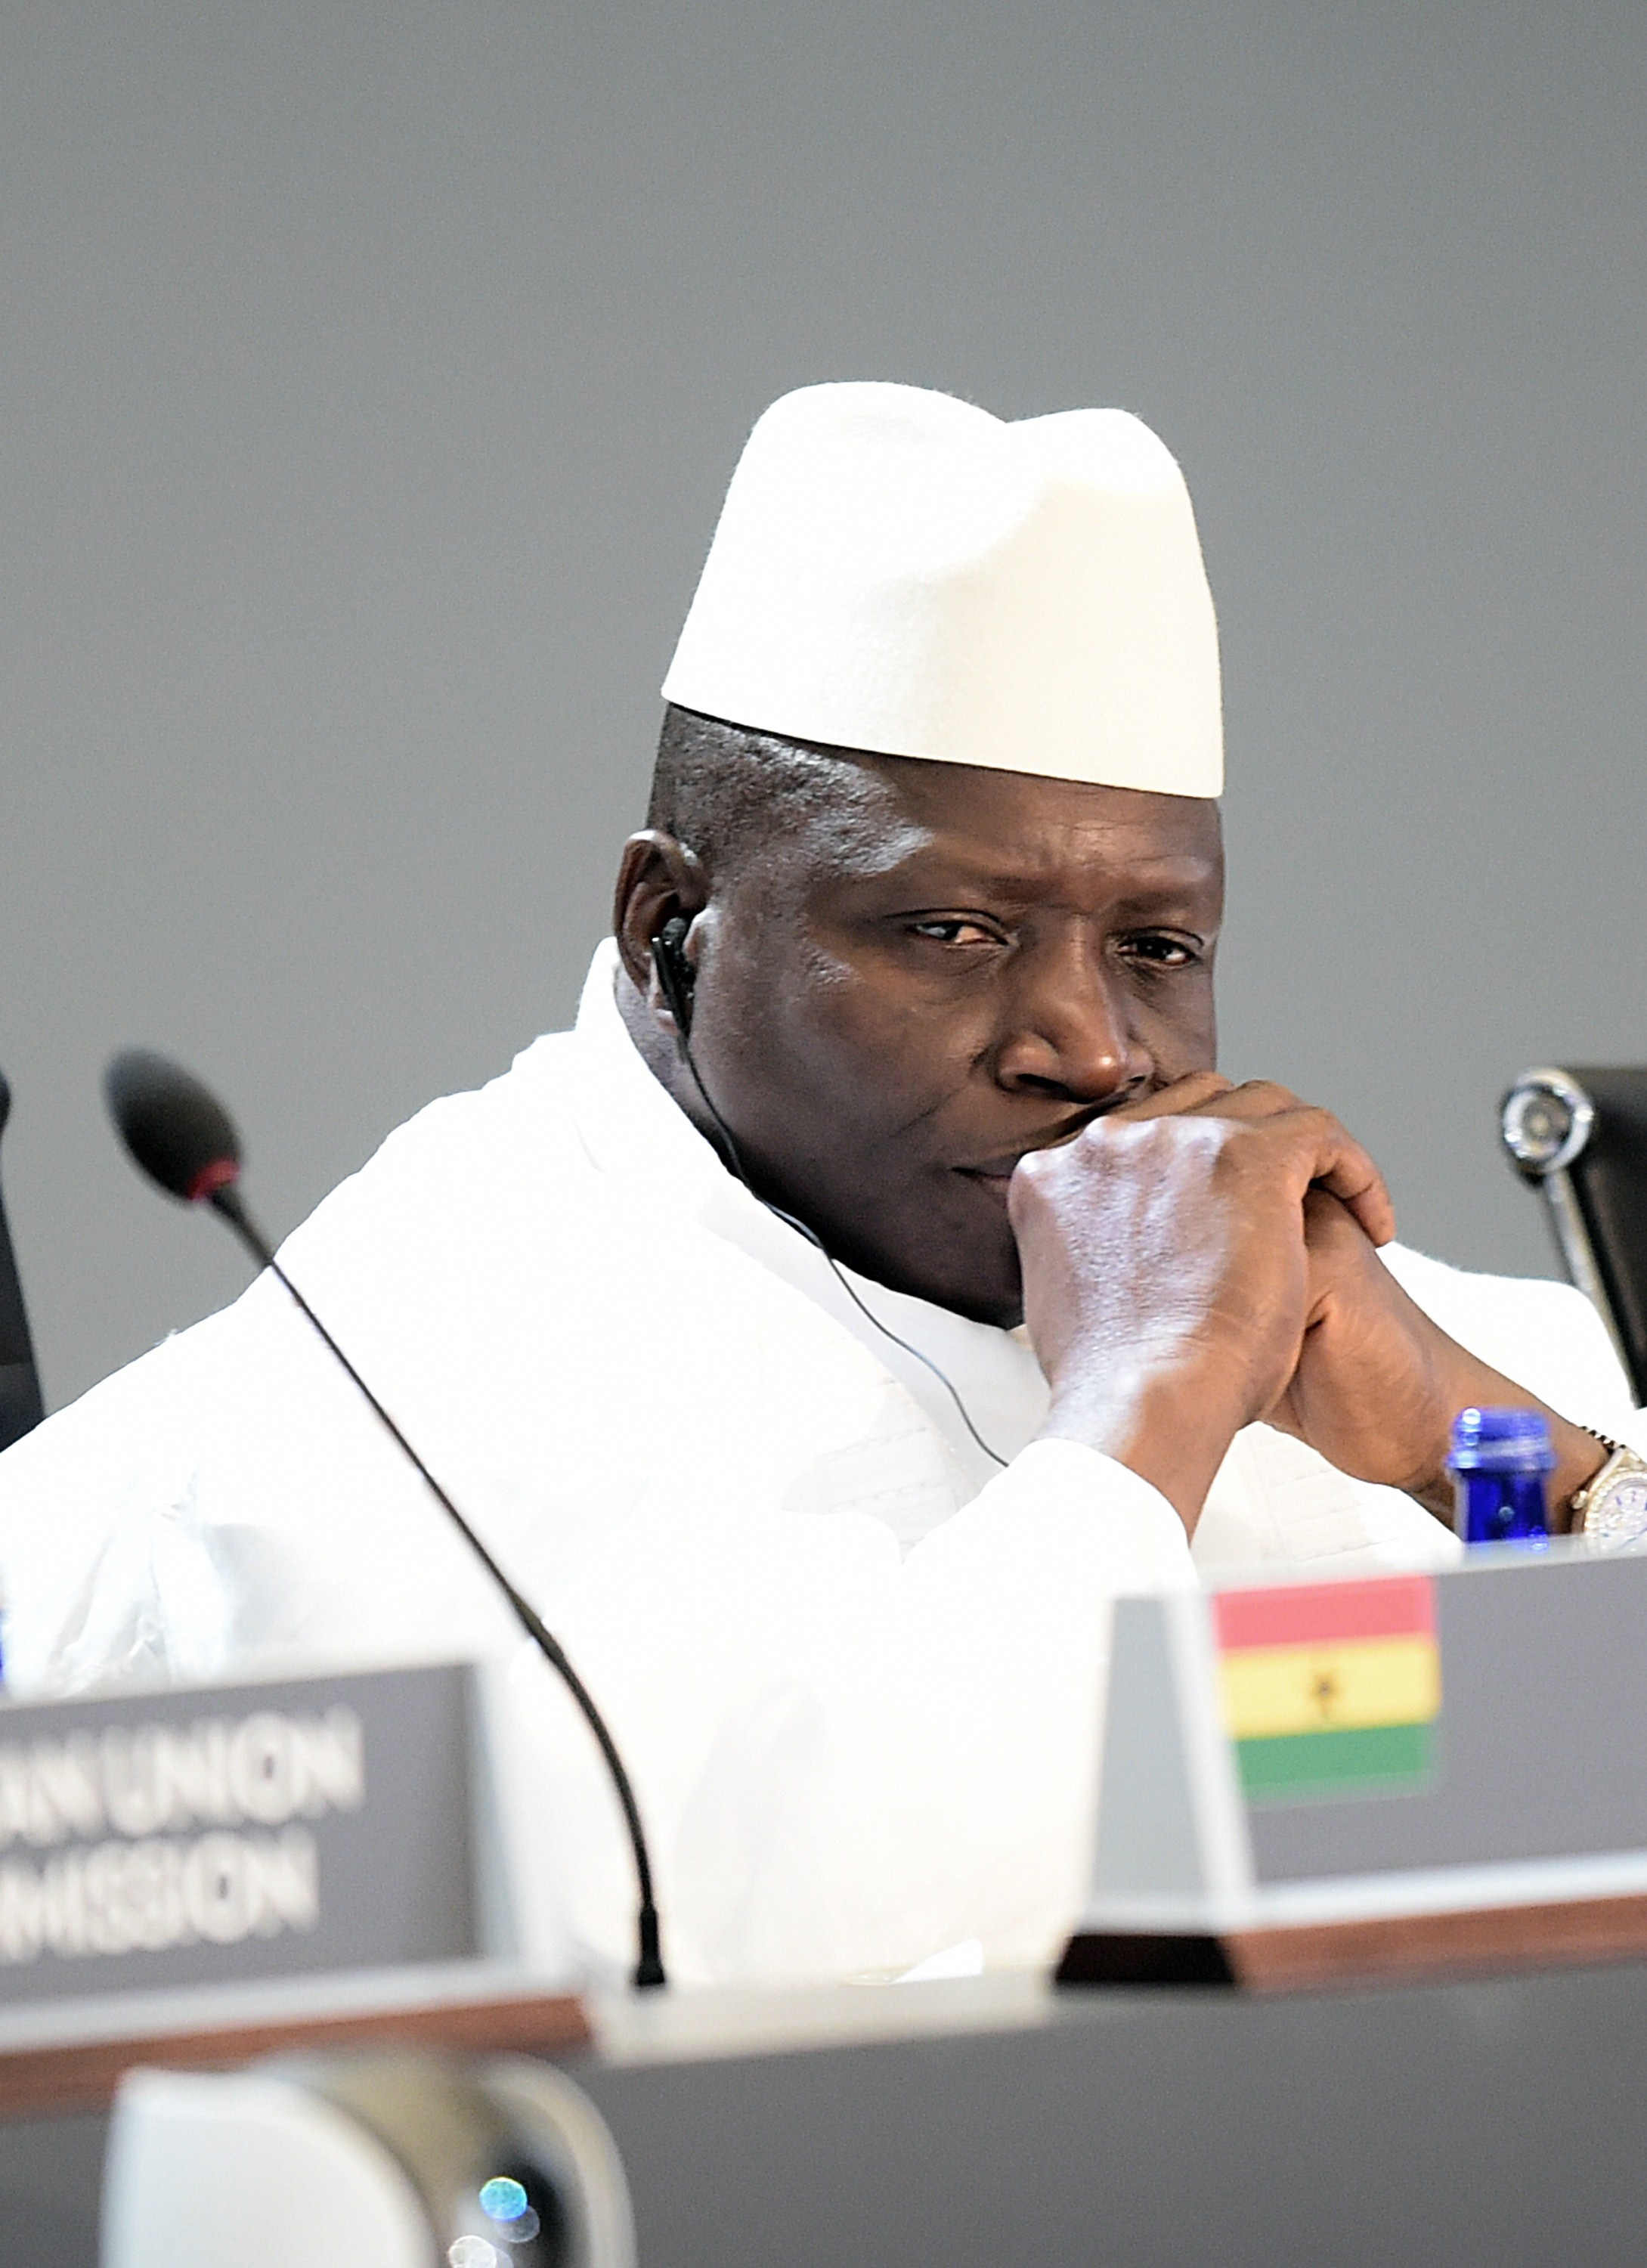 Gambia's President, Yahya Jammeh, attends the  Session 1- Investing in Africas Future  of the US-Africa Leaders Summit in Washington DC on Aug. 6, 2014.